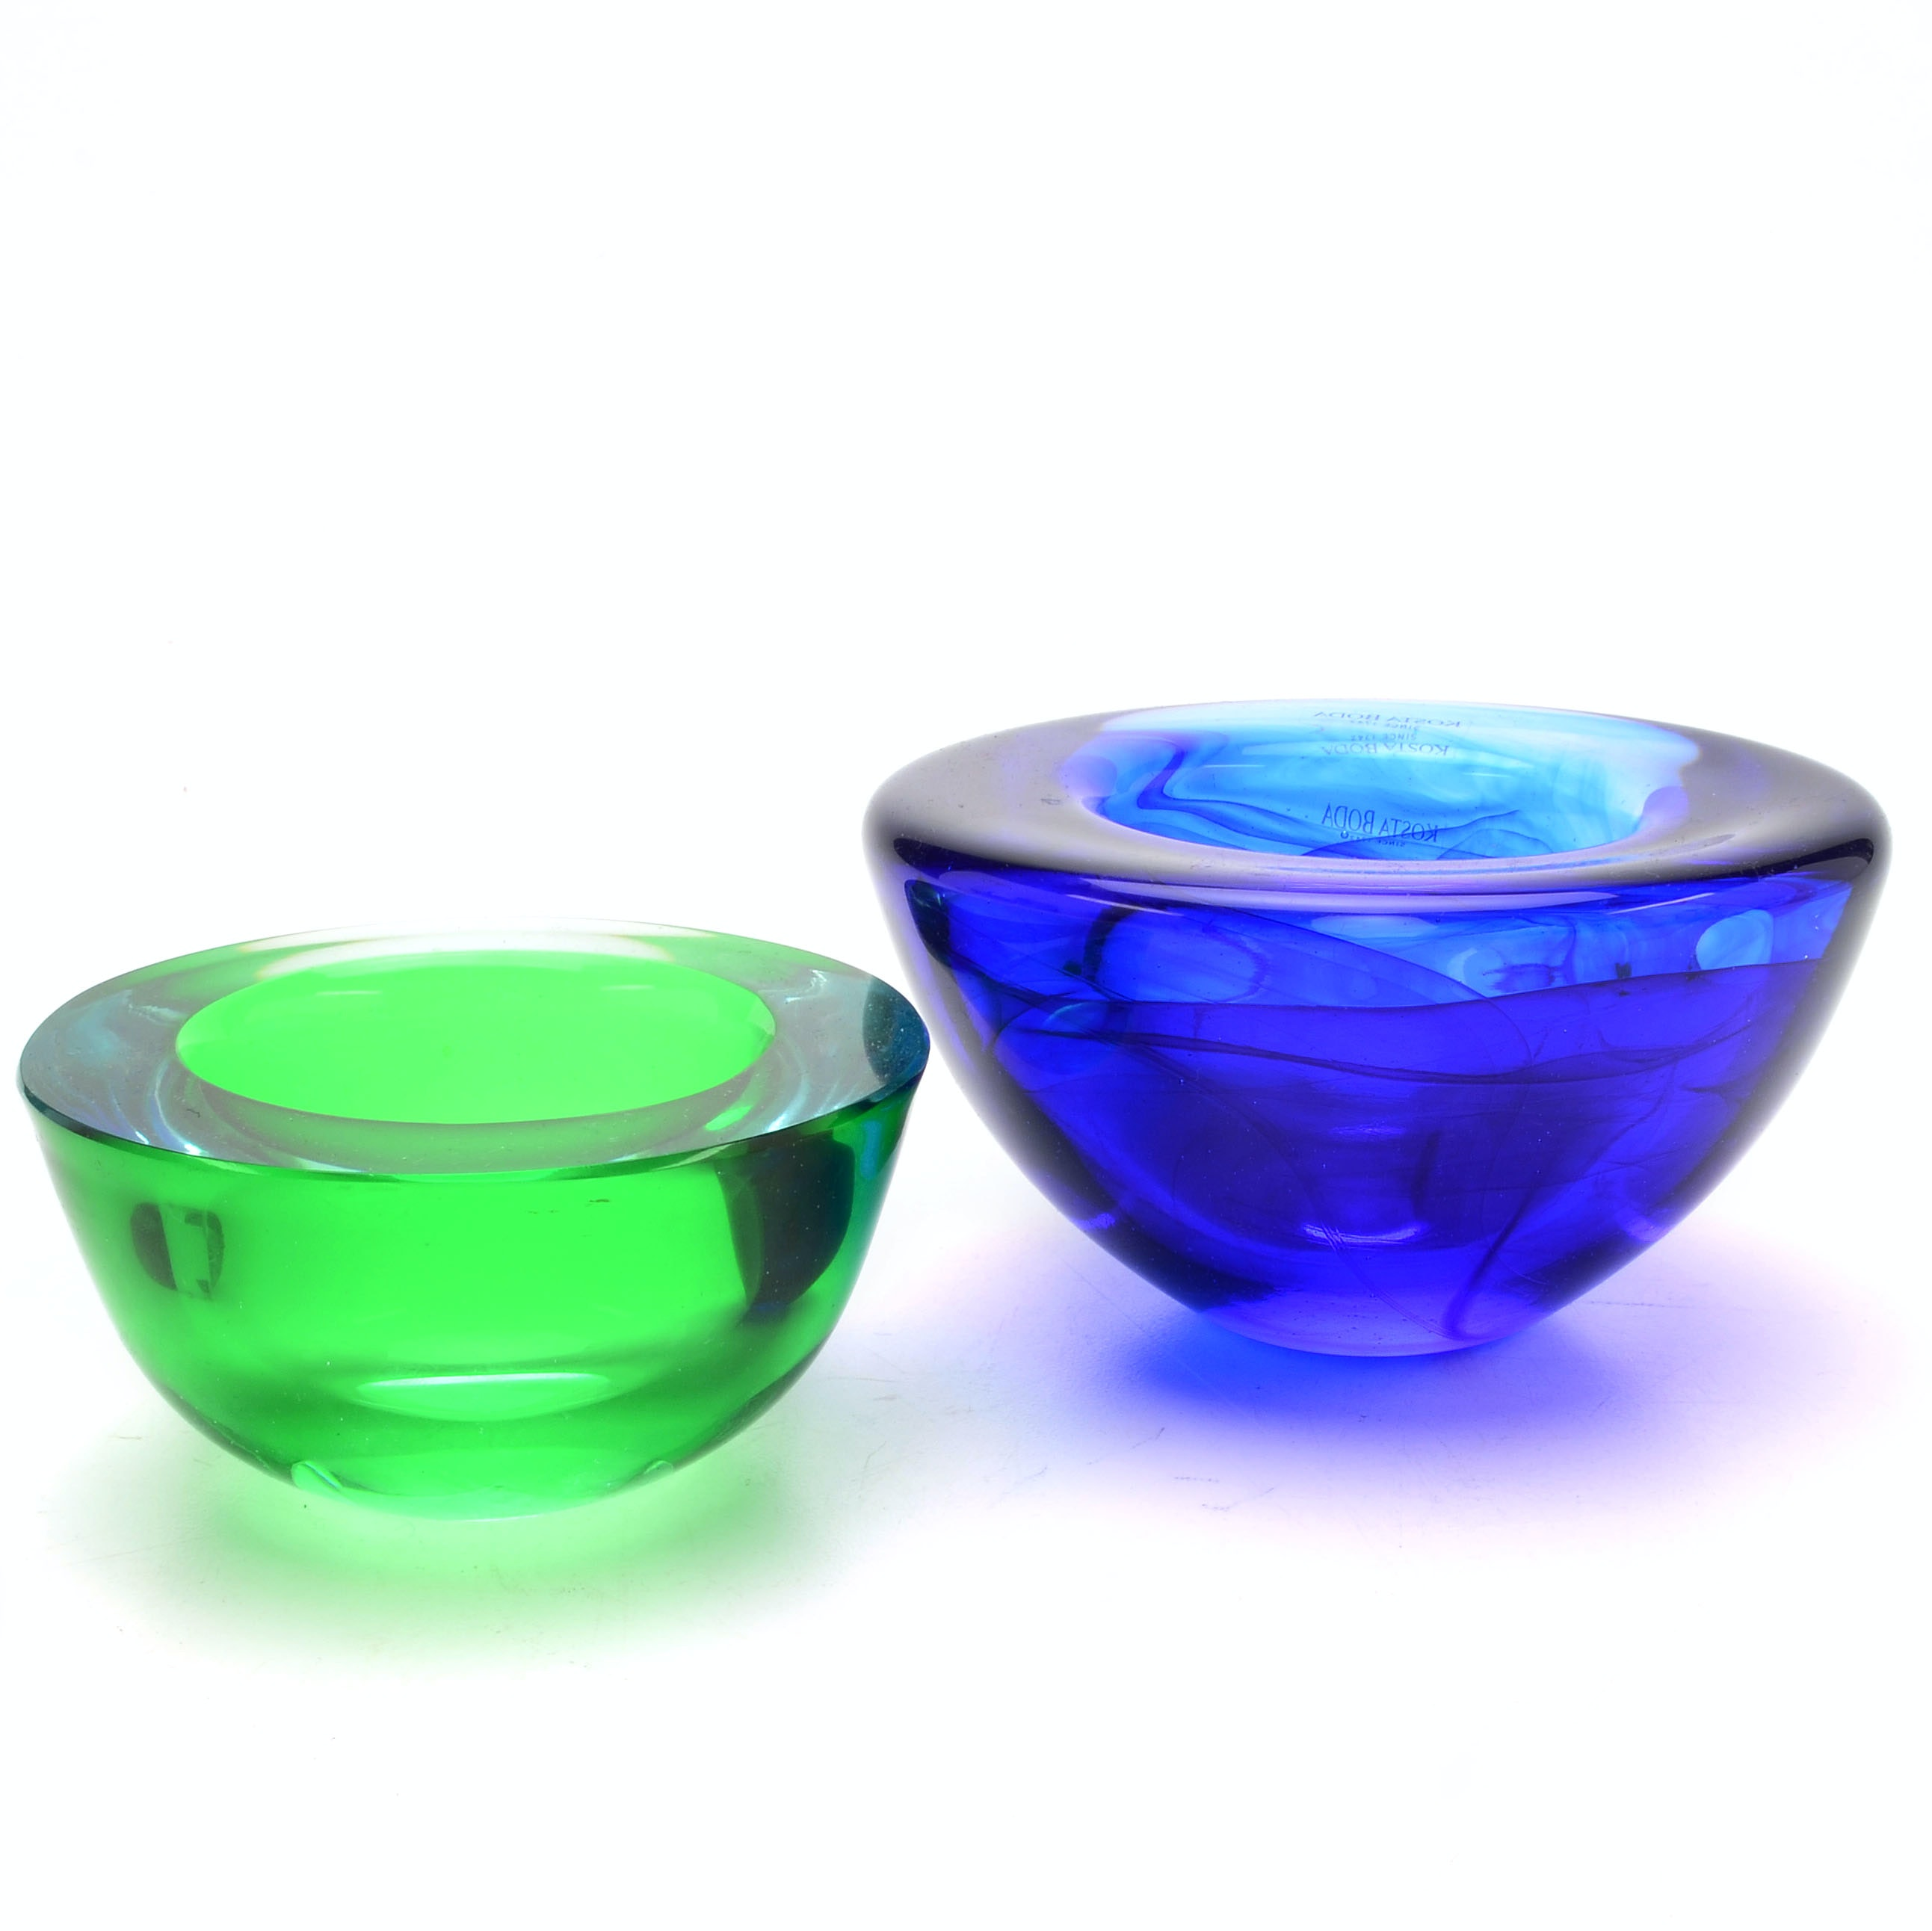 Two Art Glass Bowls, Including Kosta Boda